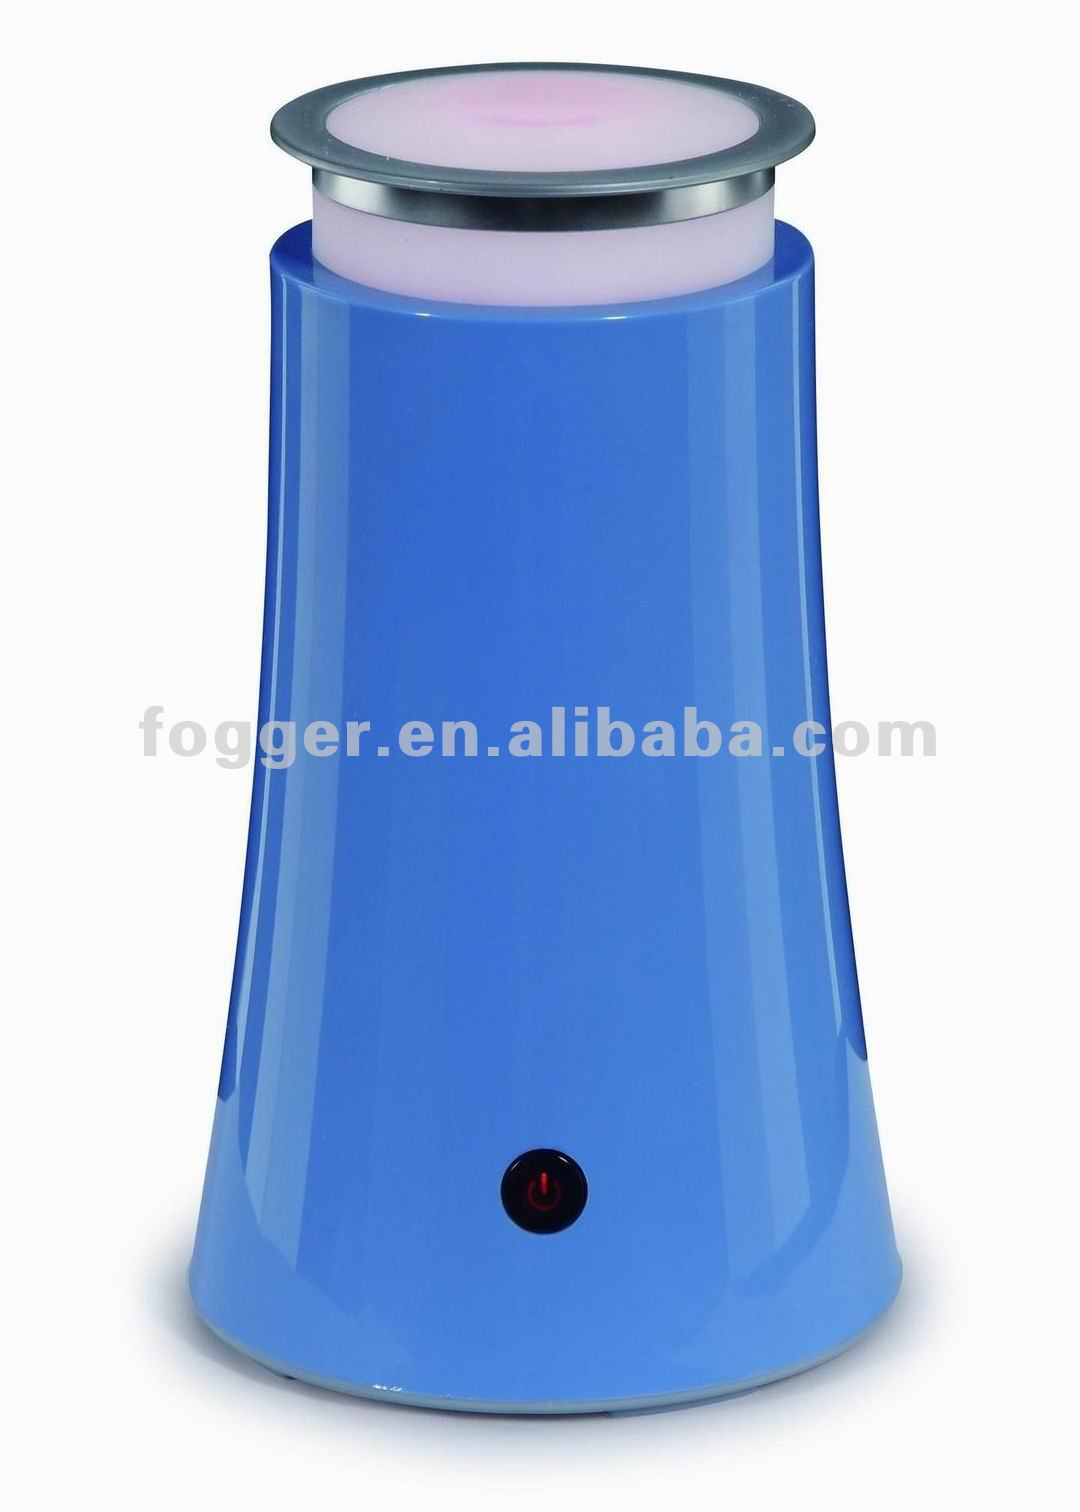 Diffuser Popular Electric Aromatizer Diffuser Humidifier Electric #224CA9